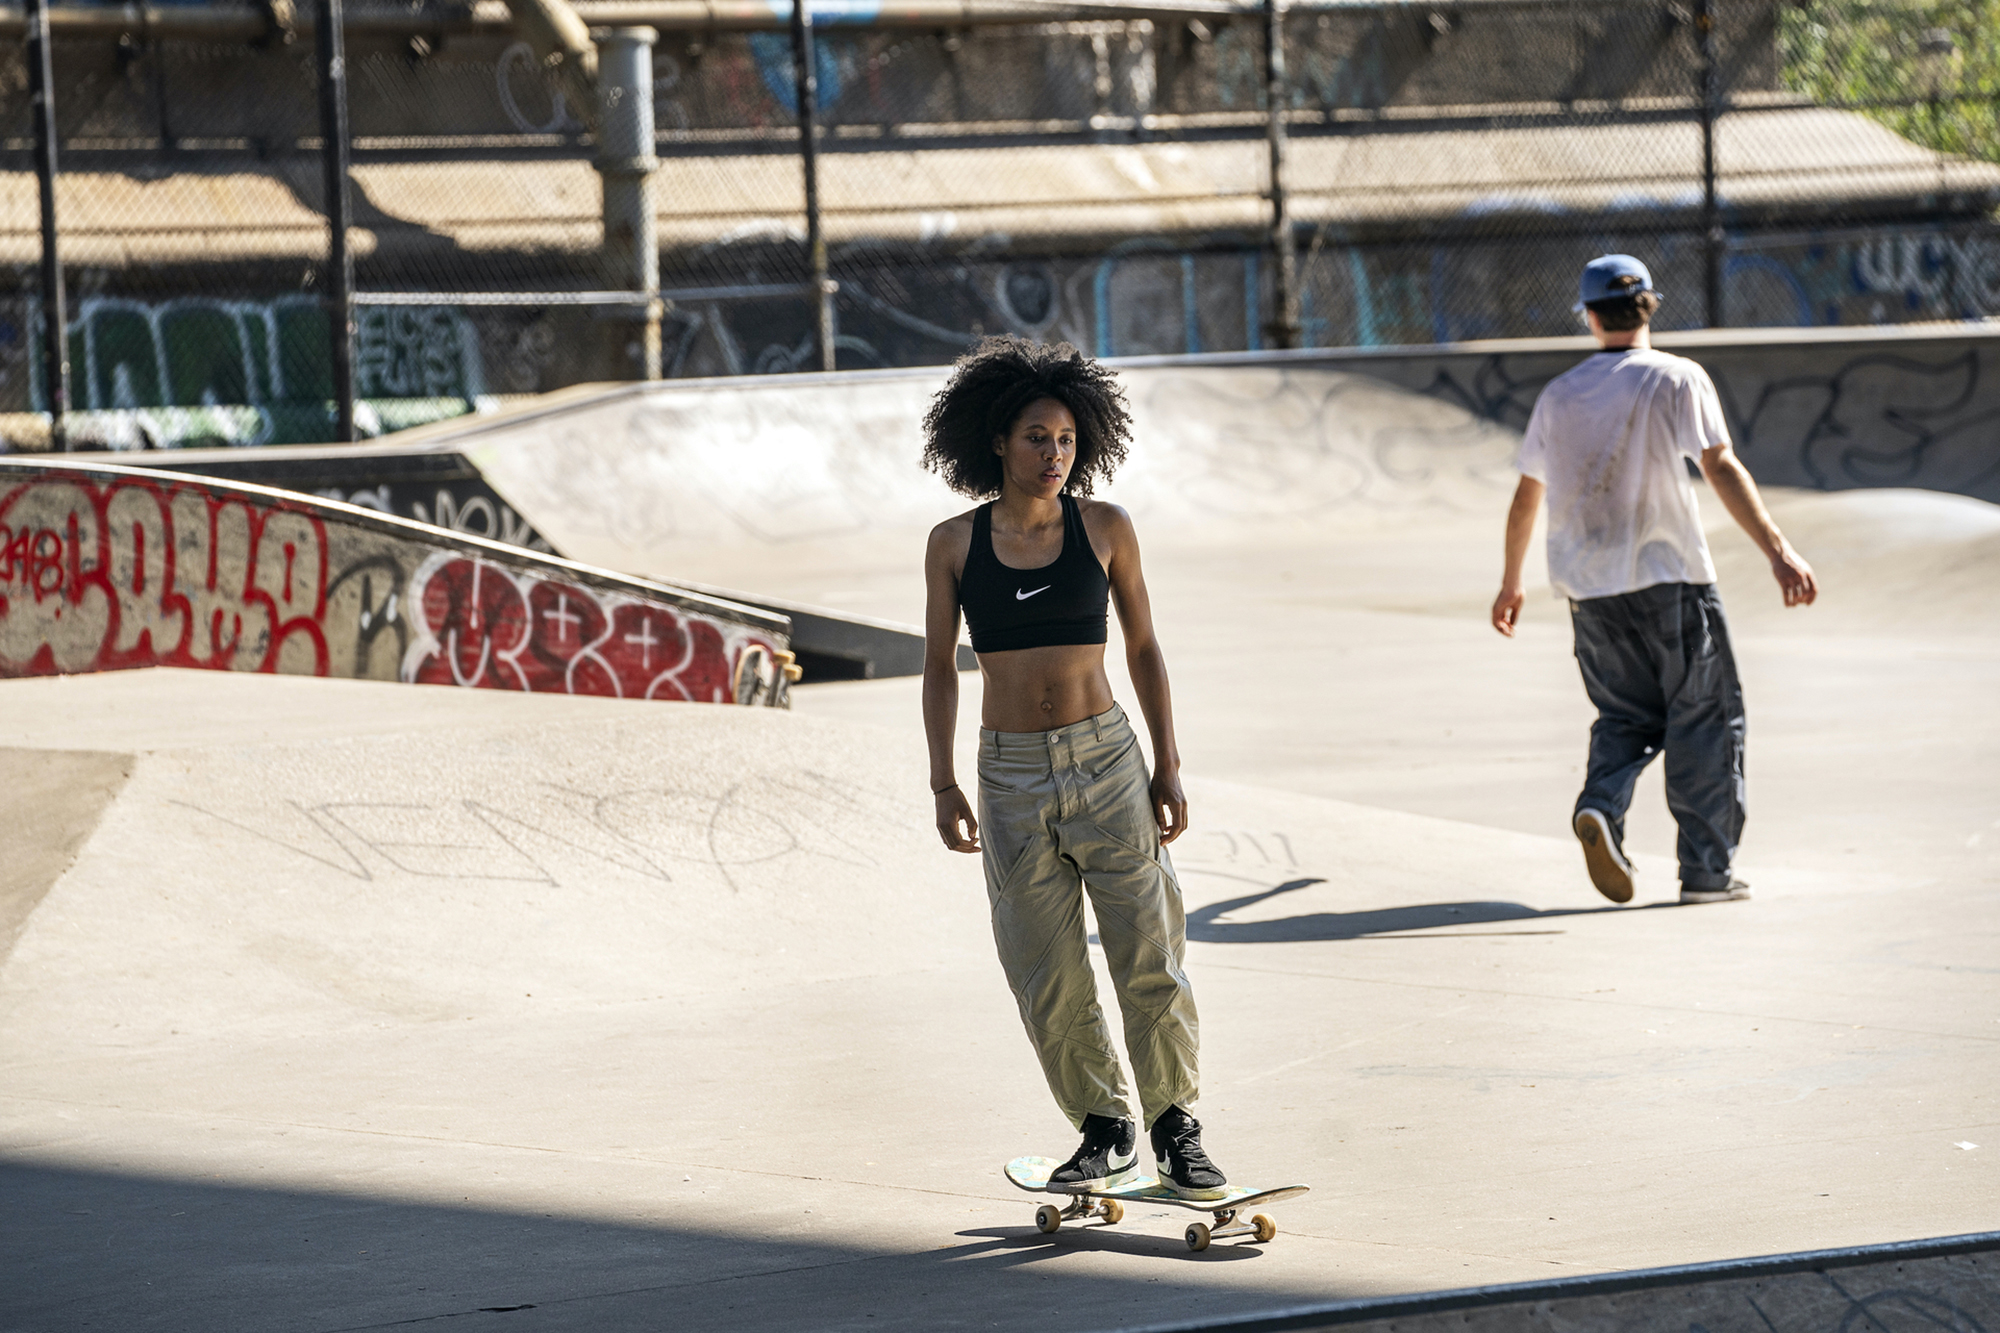 New HBO show 'Betty' shows unbridled joy of NYC female skateboarders